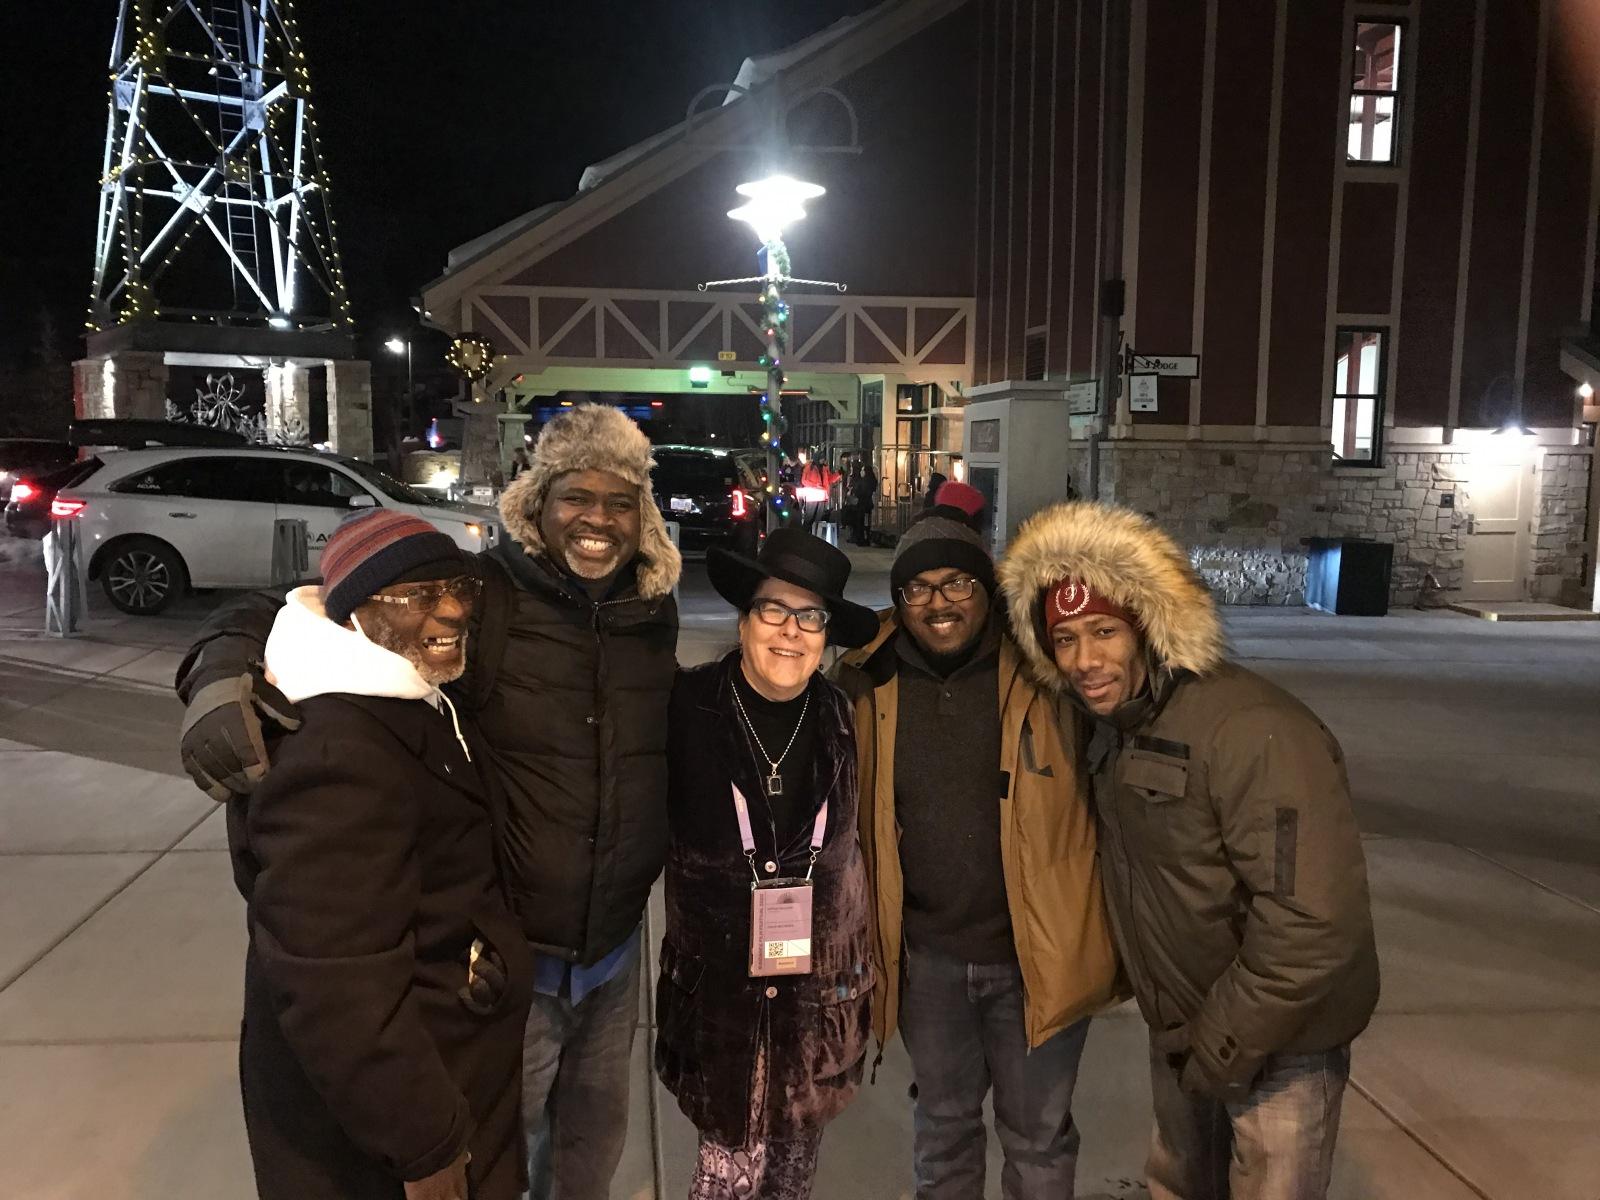 Kenneth-Ketrick-Carol-Ann-Shine-Jeff-Javon-Blackhouse-Sundance-2020